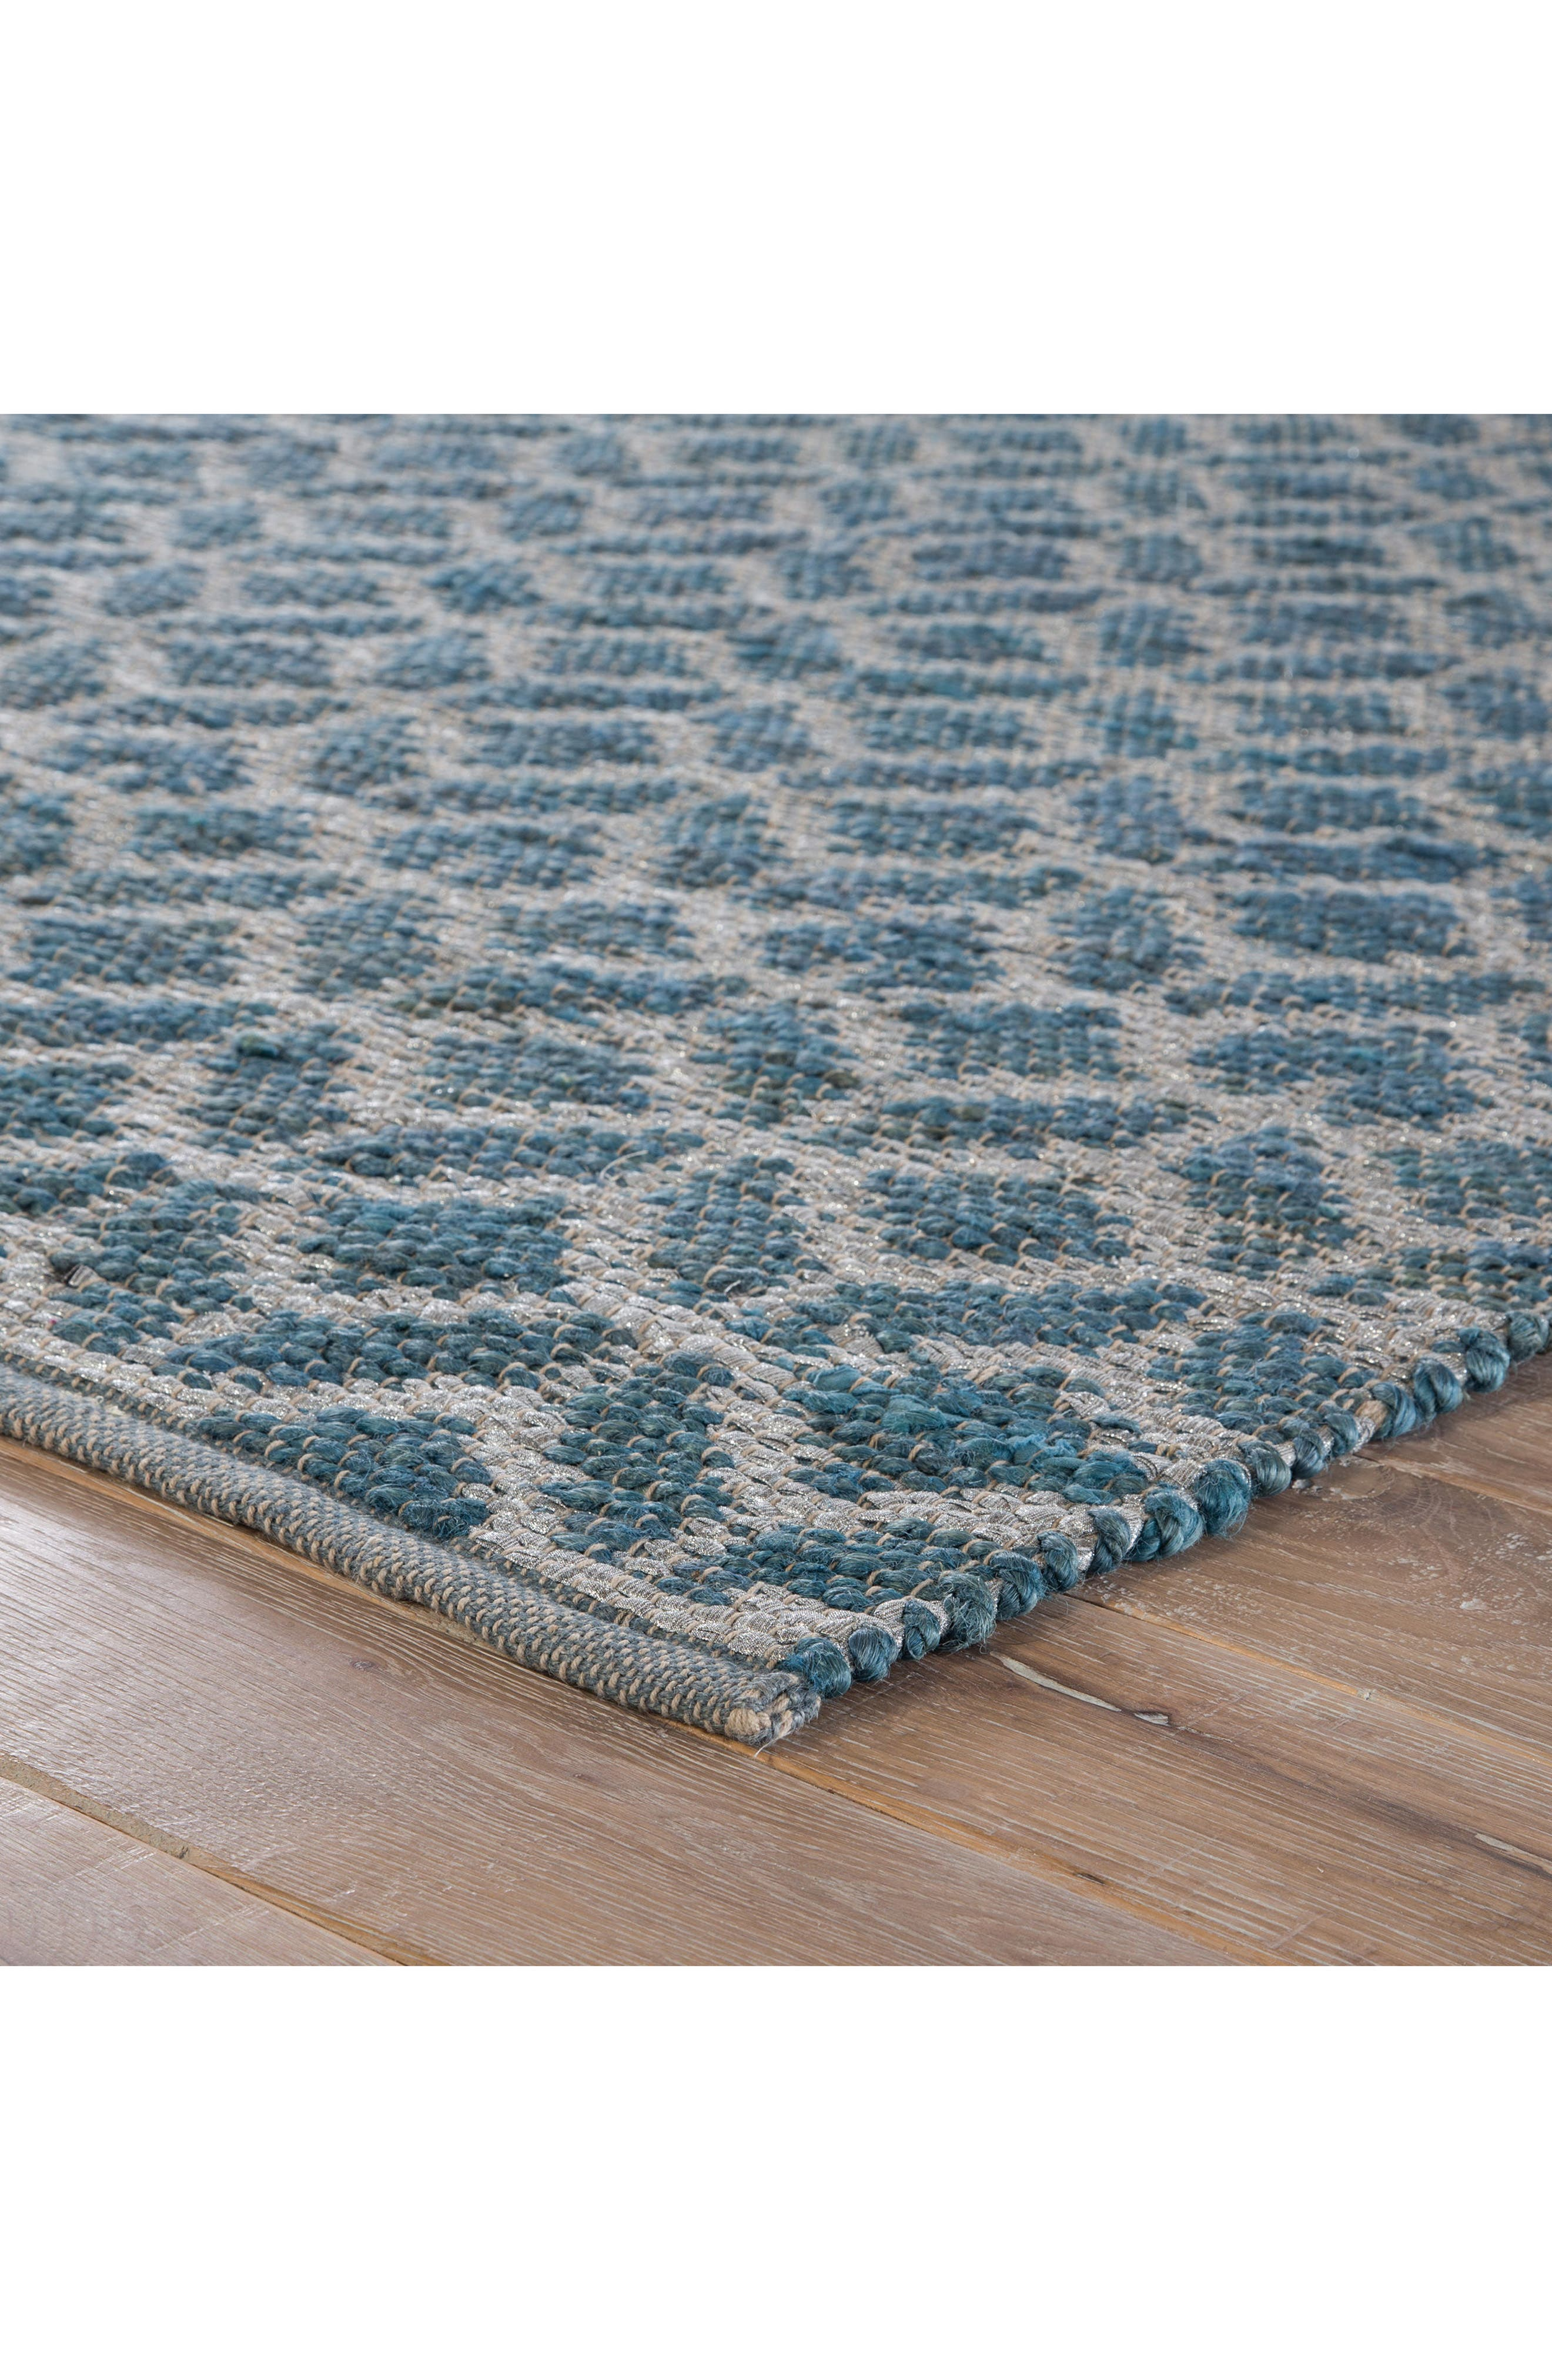 Calm Waters Rug,                             Alternate thumbnail 6, color,                             INDIAN TEAL/ SILVER